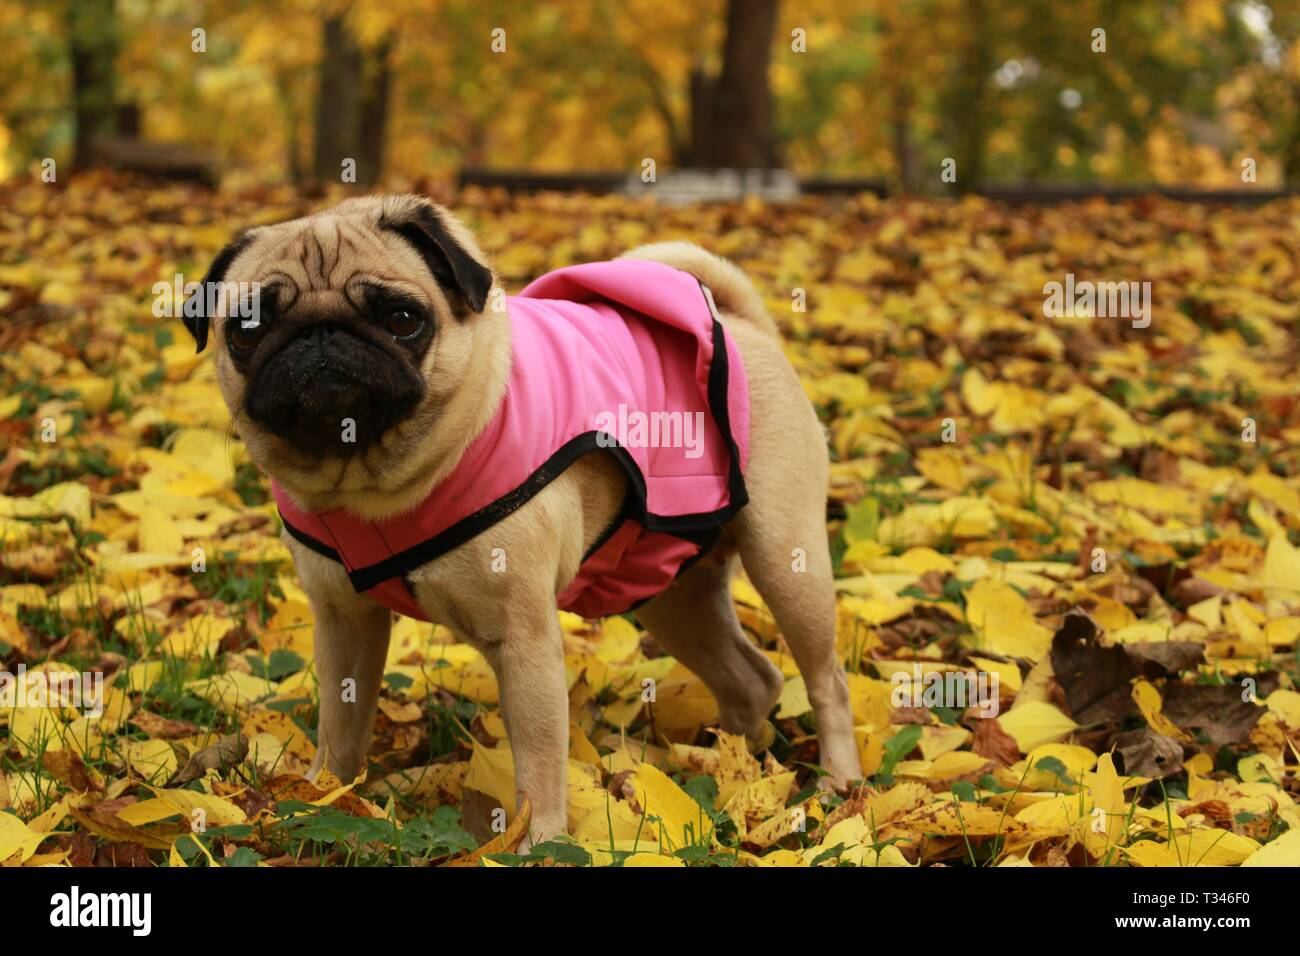 Little female pug posing in dog pink coat in colorful autumn leaves - Stock Image